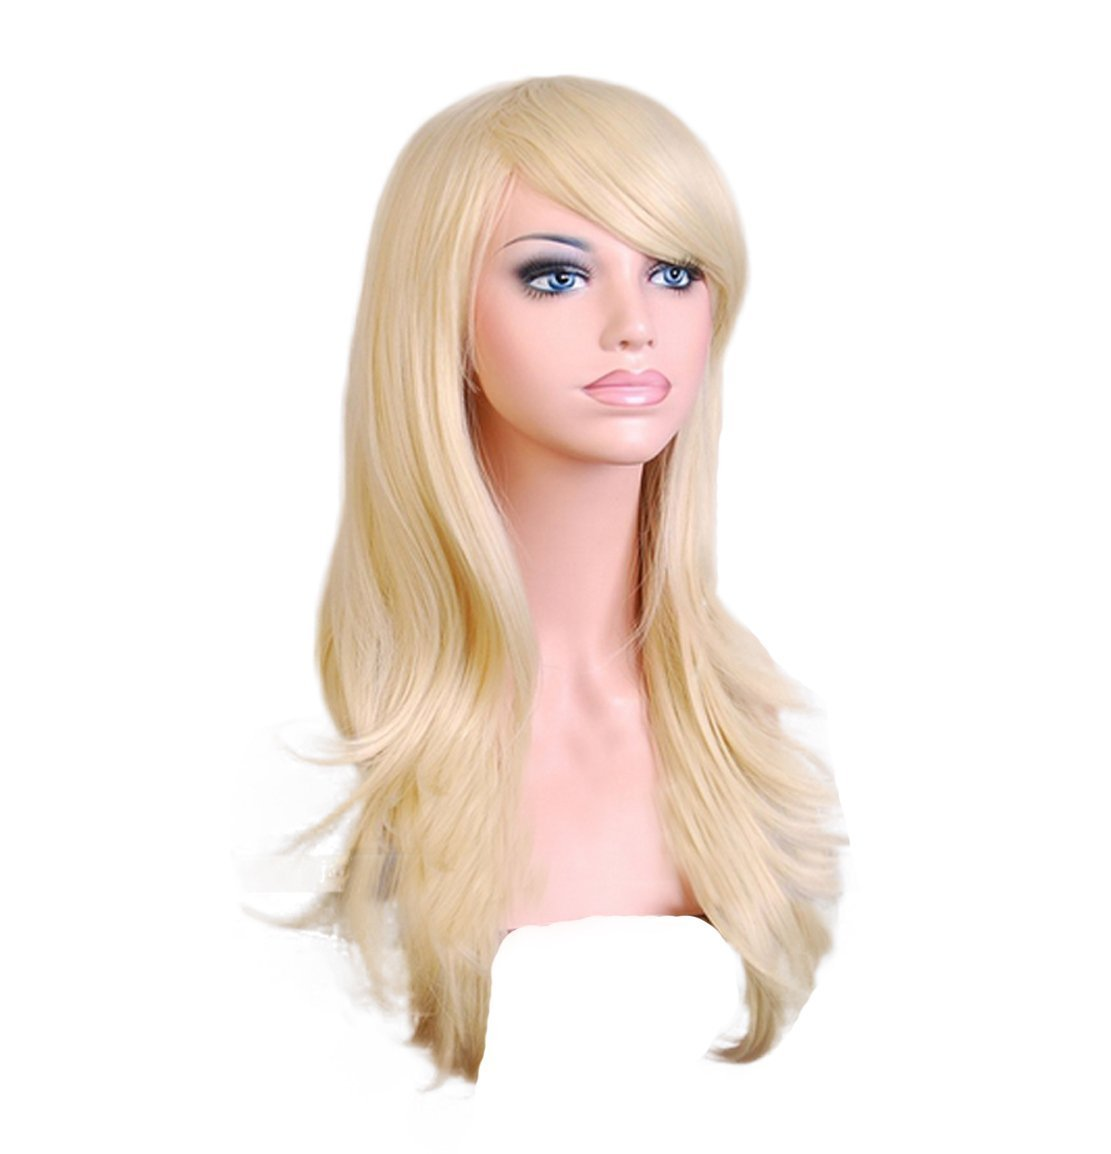 AneShe Wigs 28'' Long Wavy Hair Heat Resistant Cosplay Wig for Women (Light Blonde) by AneShe (Image #2)